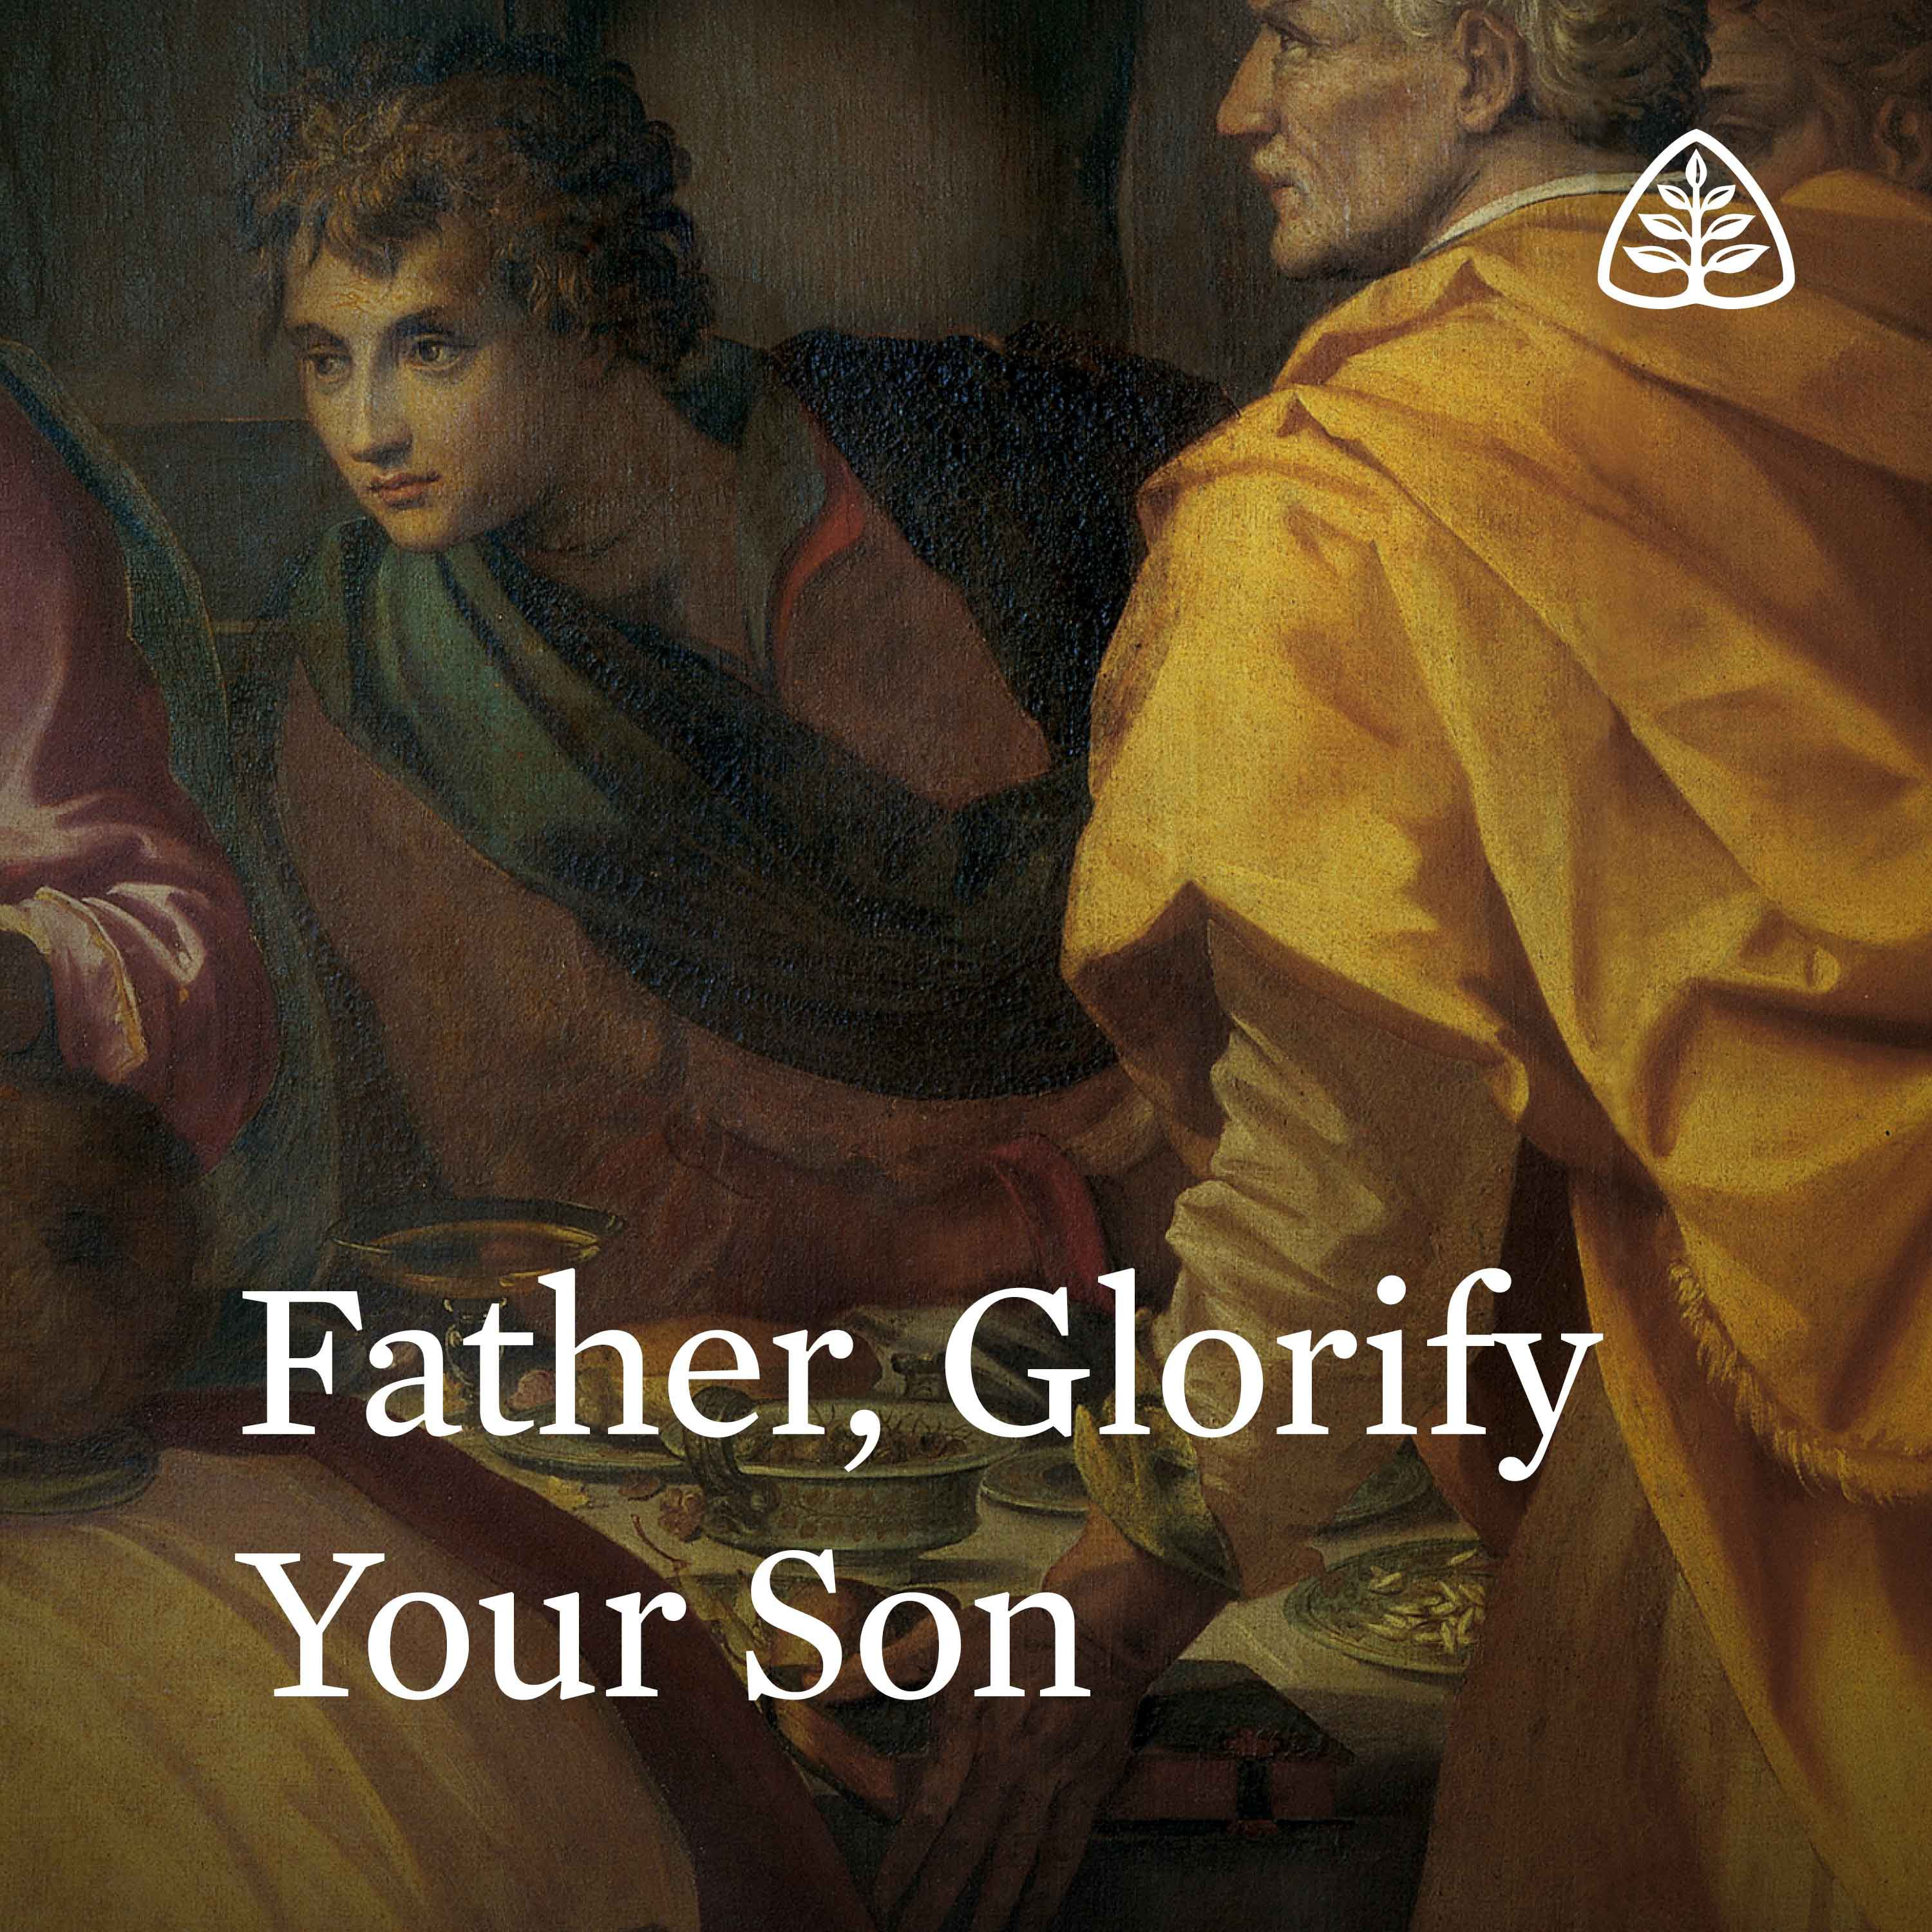 Father, Glorify Your Son